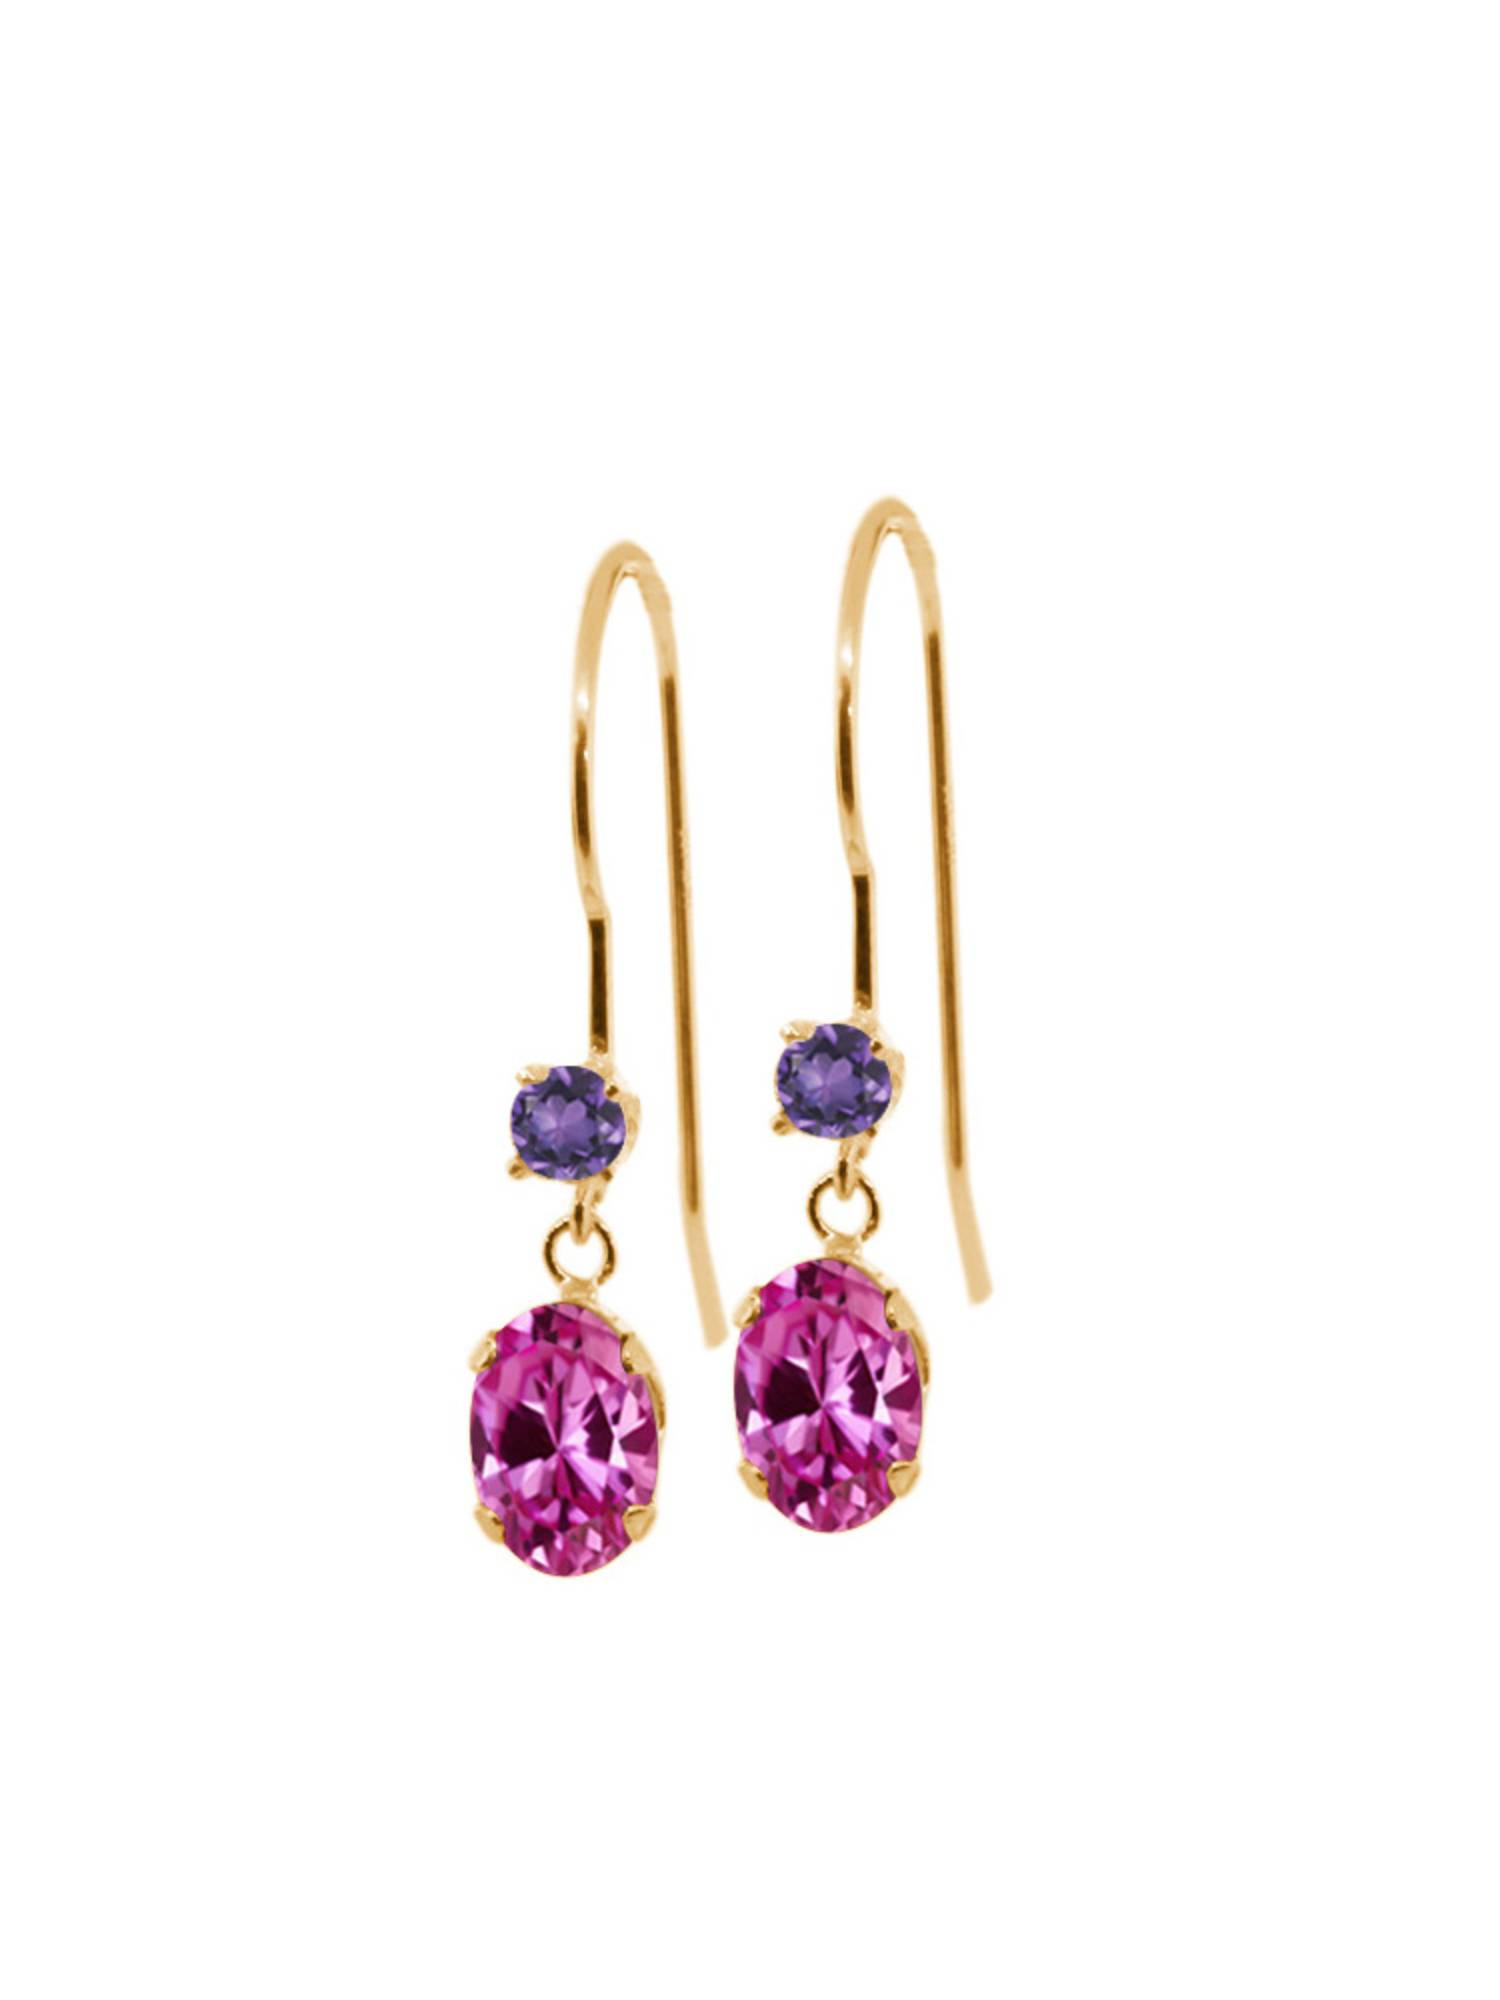 1.32 Ct Oval Pink Created Sapphire Purple Amethyst 14K Yellow Gold Earrings by